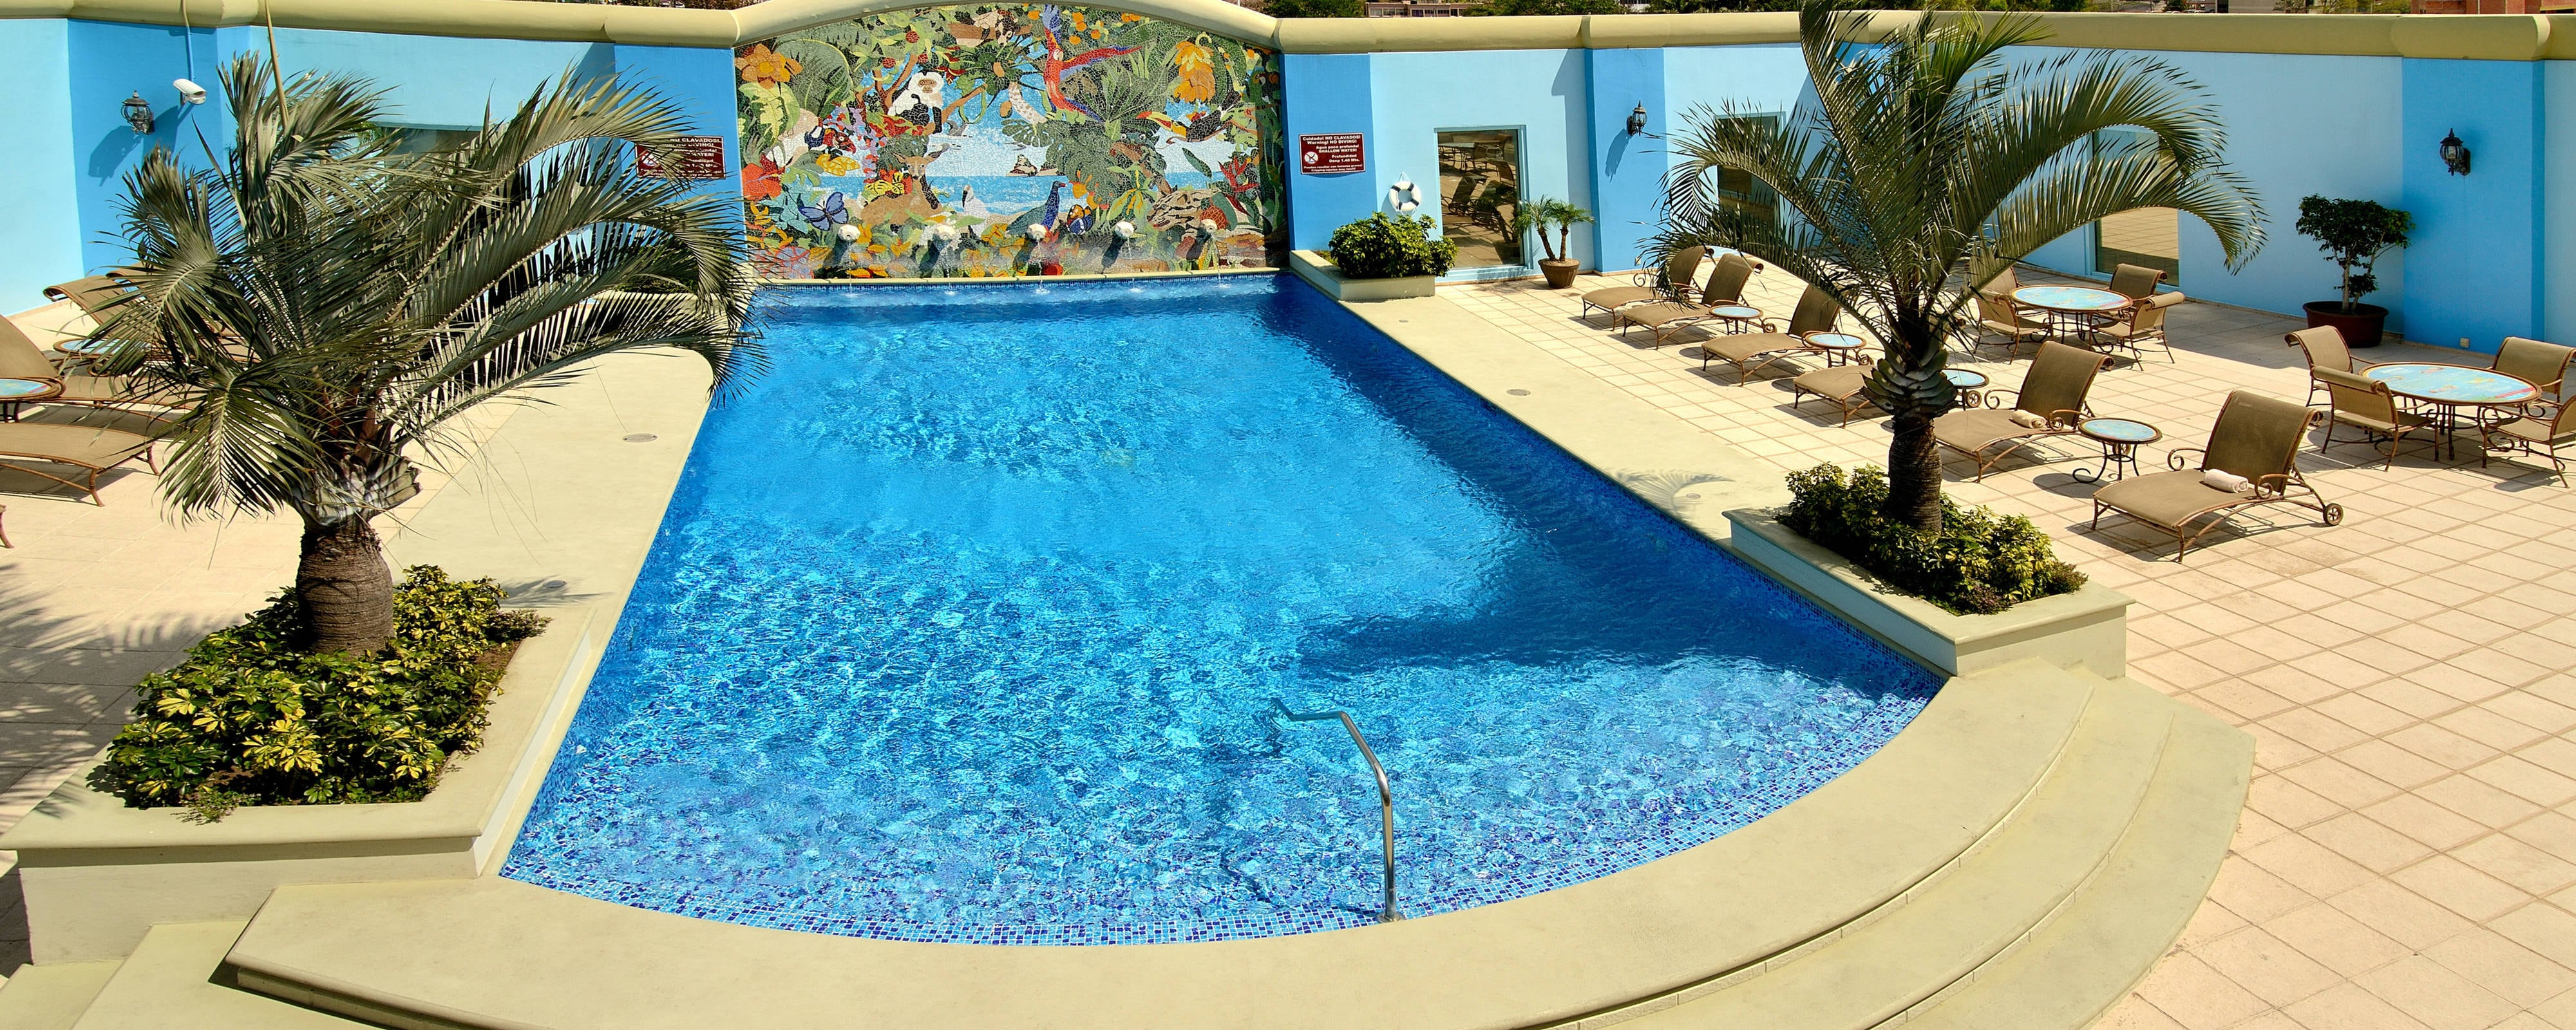 Hotel with Swimming Pool in Tegucigalpa